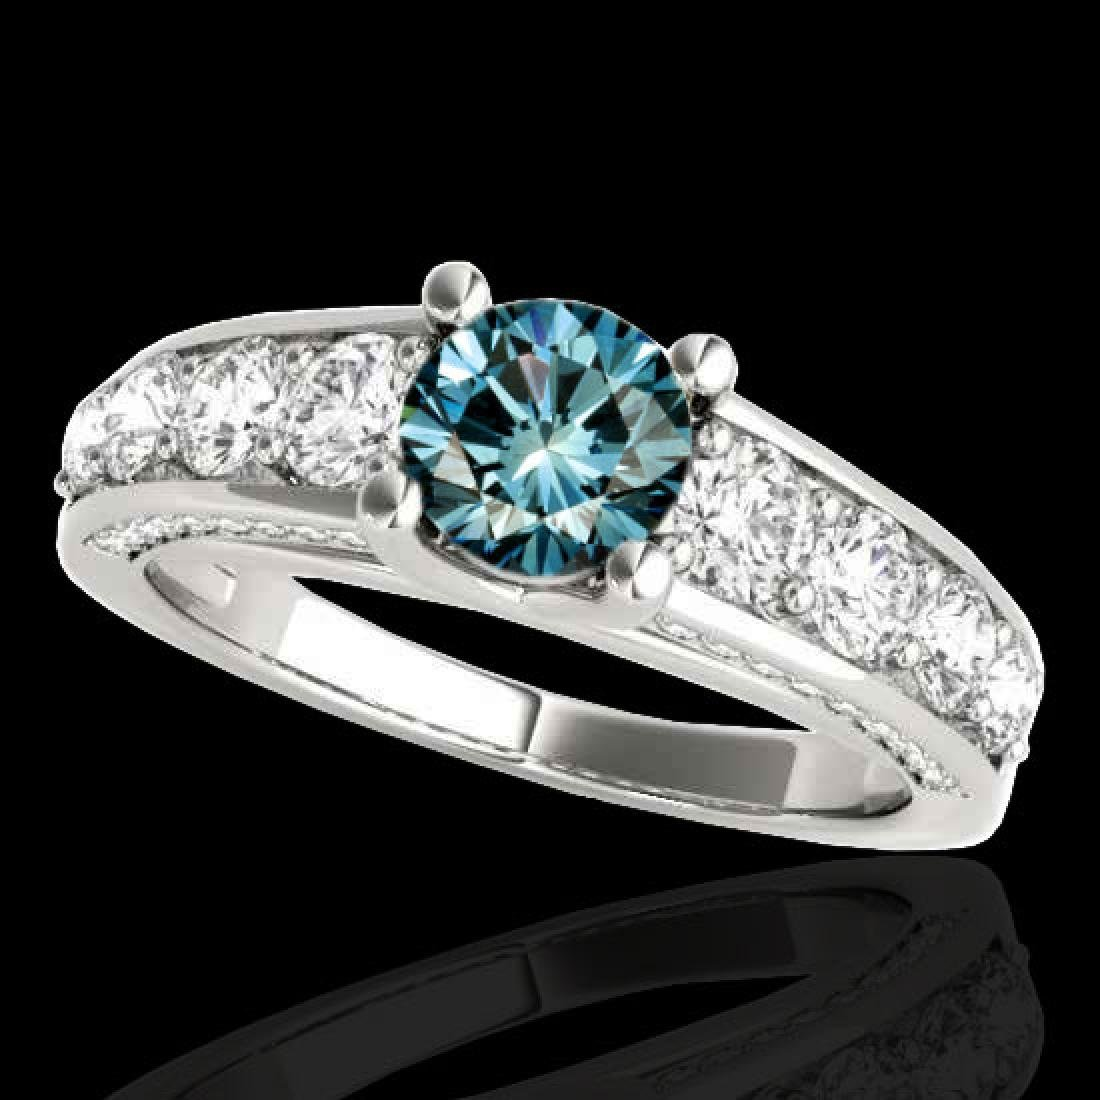 3.05 CTW SI Certified Fancy Blue Diamond Solitaire Ring